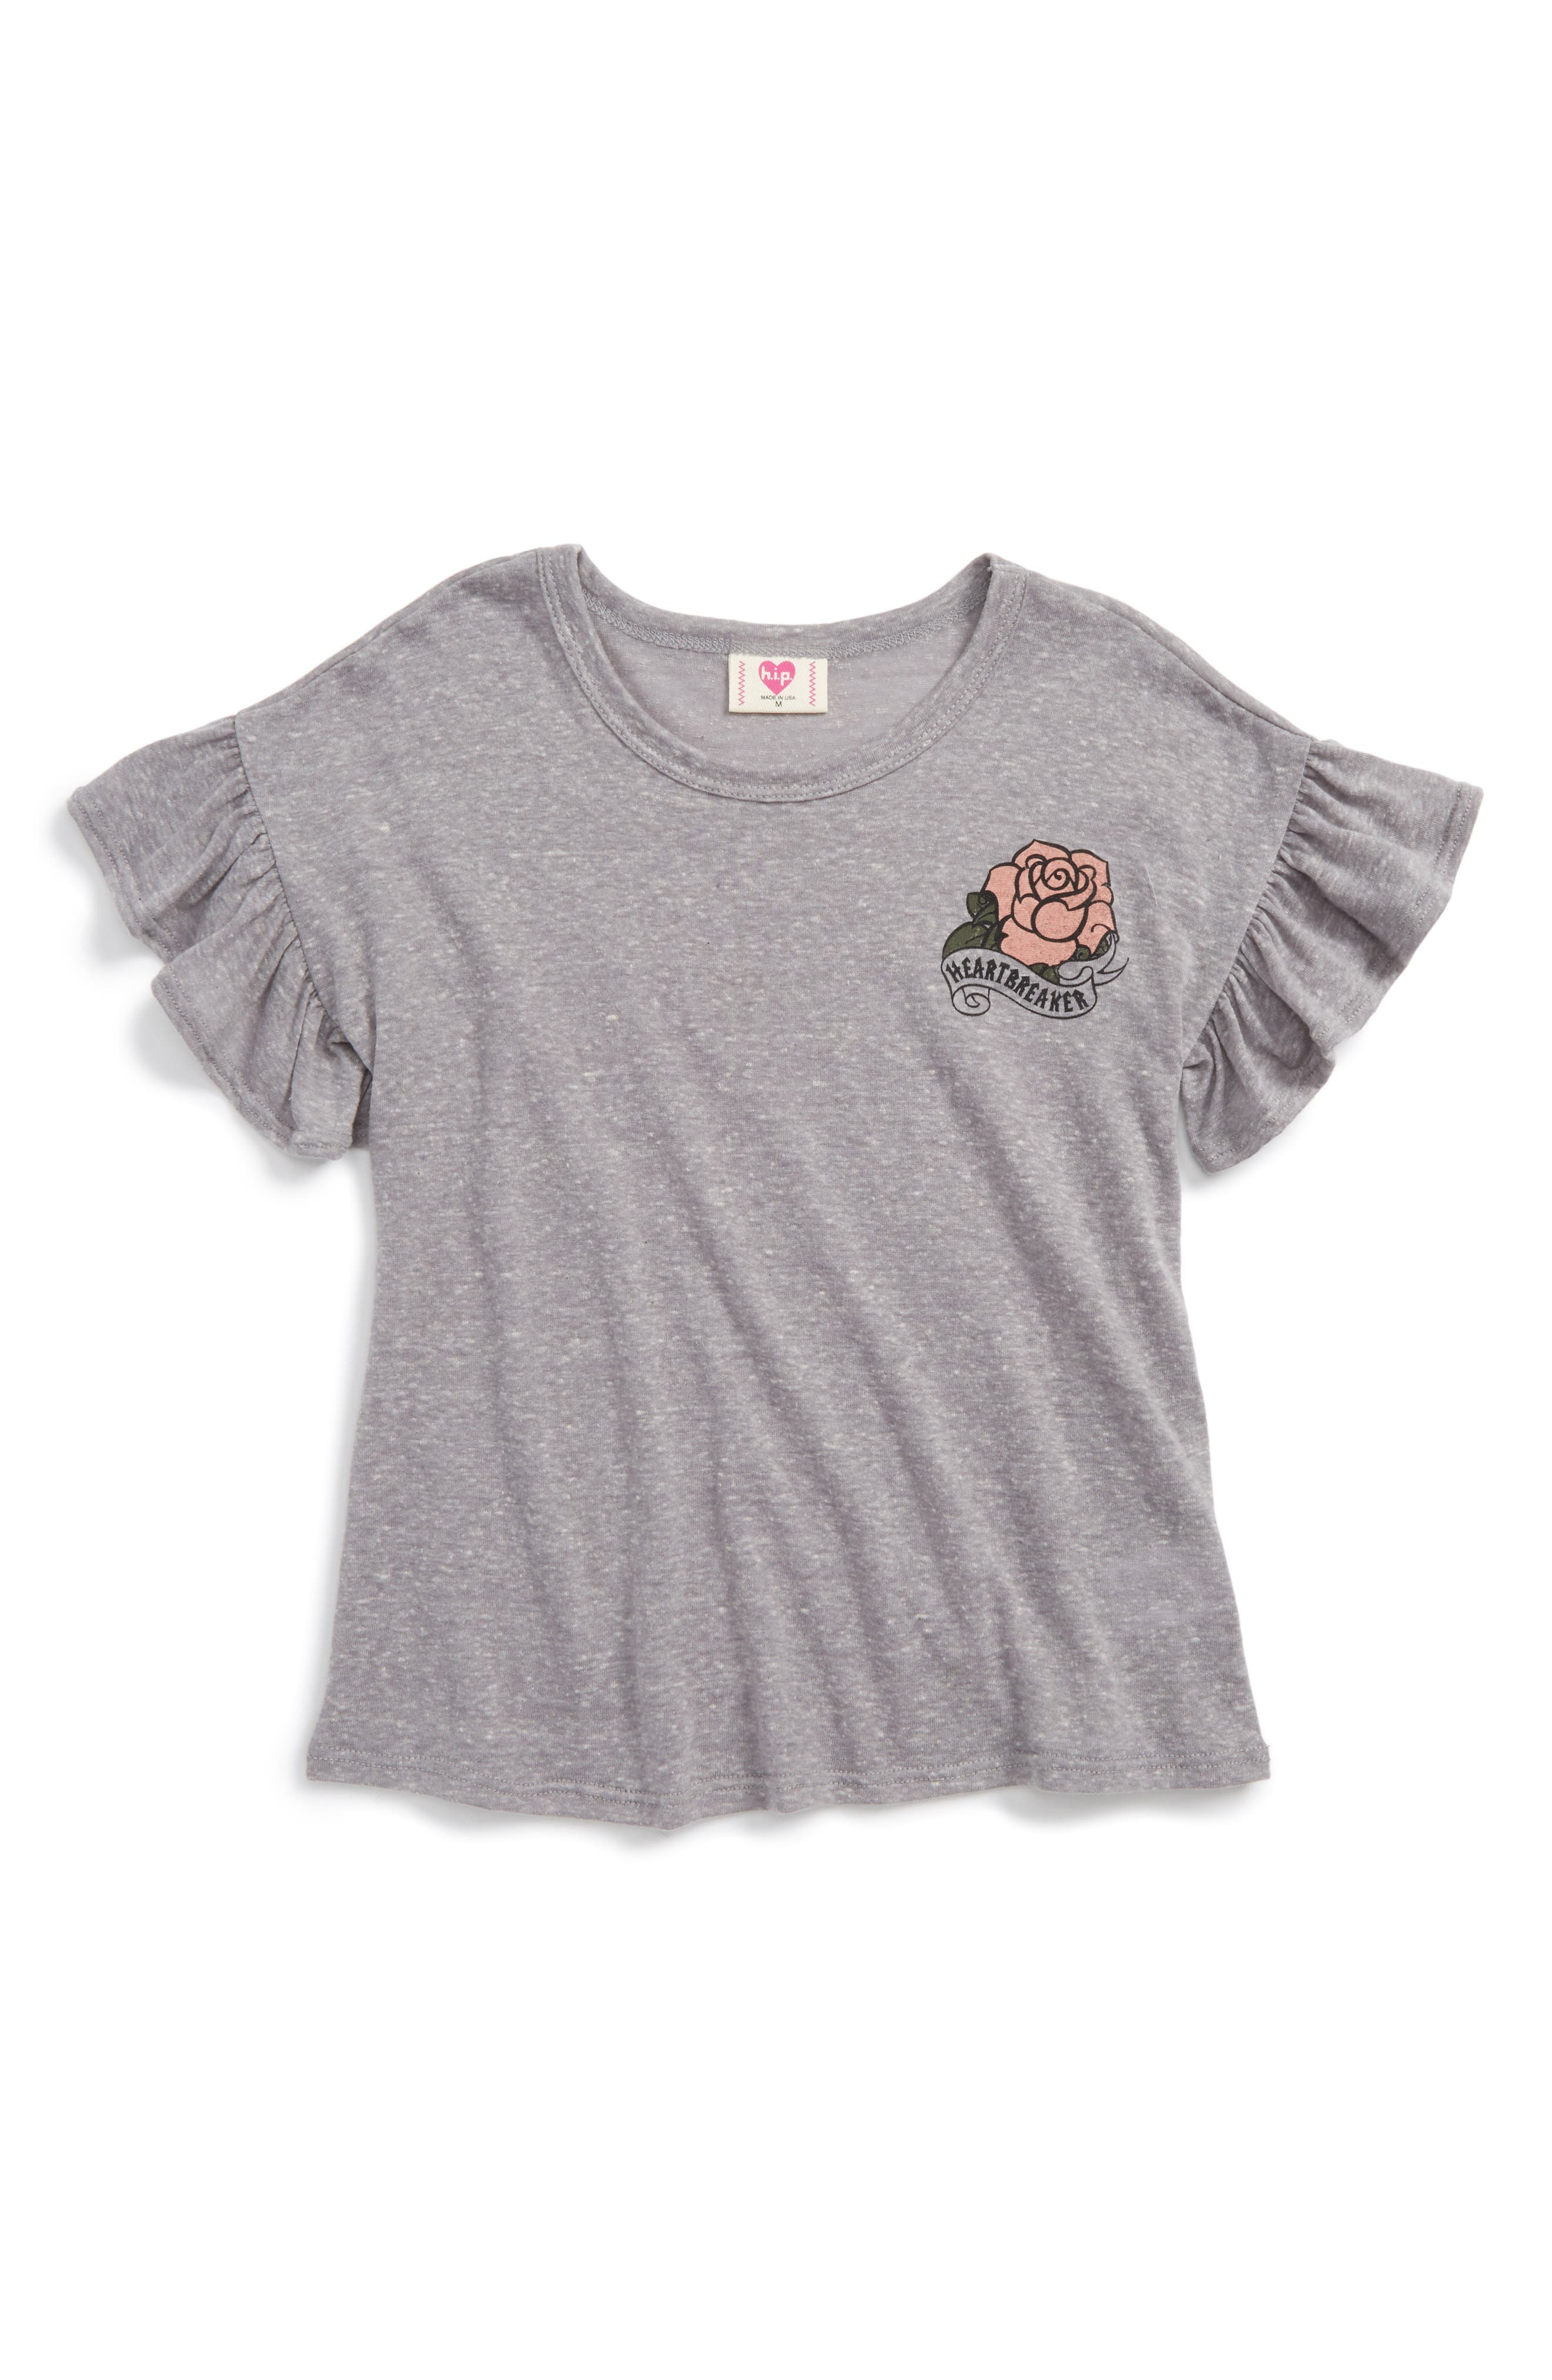 H.I.P. Rose Graphic Flutter Sleeve Tee